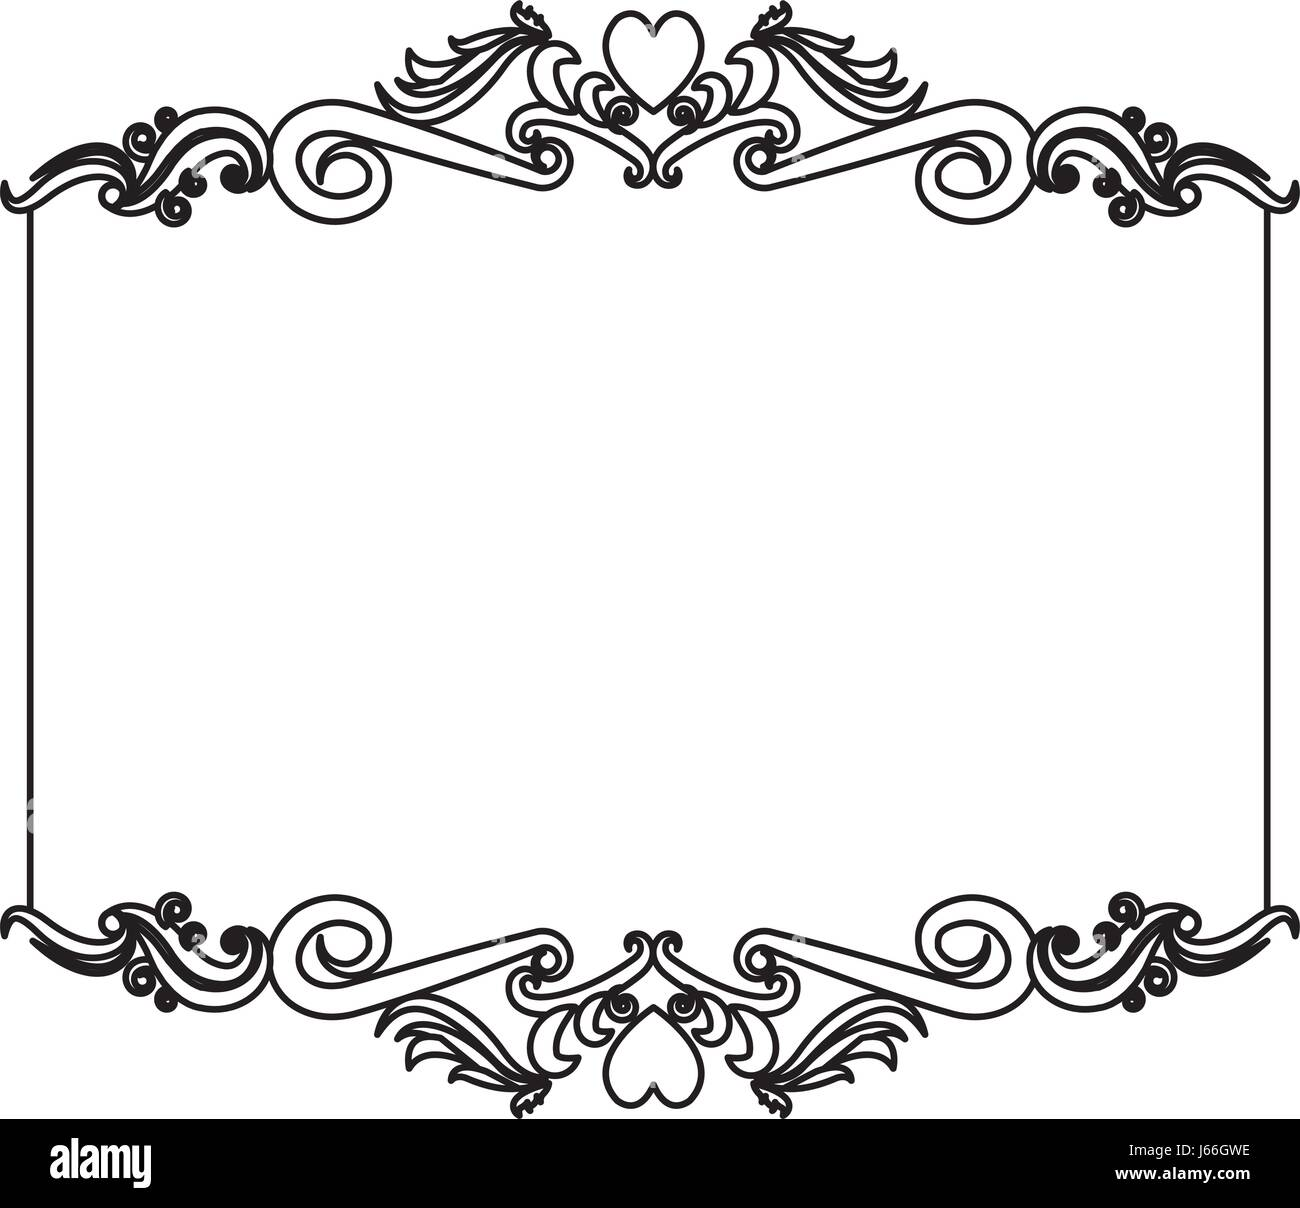 Decorative Black Flower Border Stock Image: Decorative Card Frame Floral Border Cute Image Stock